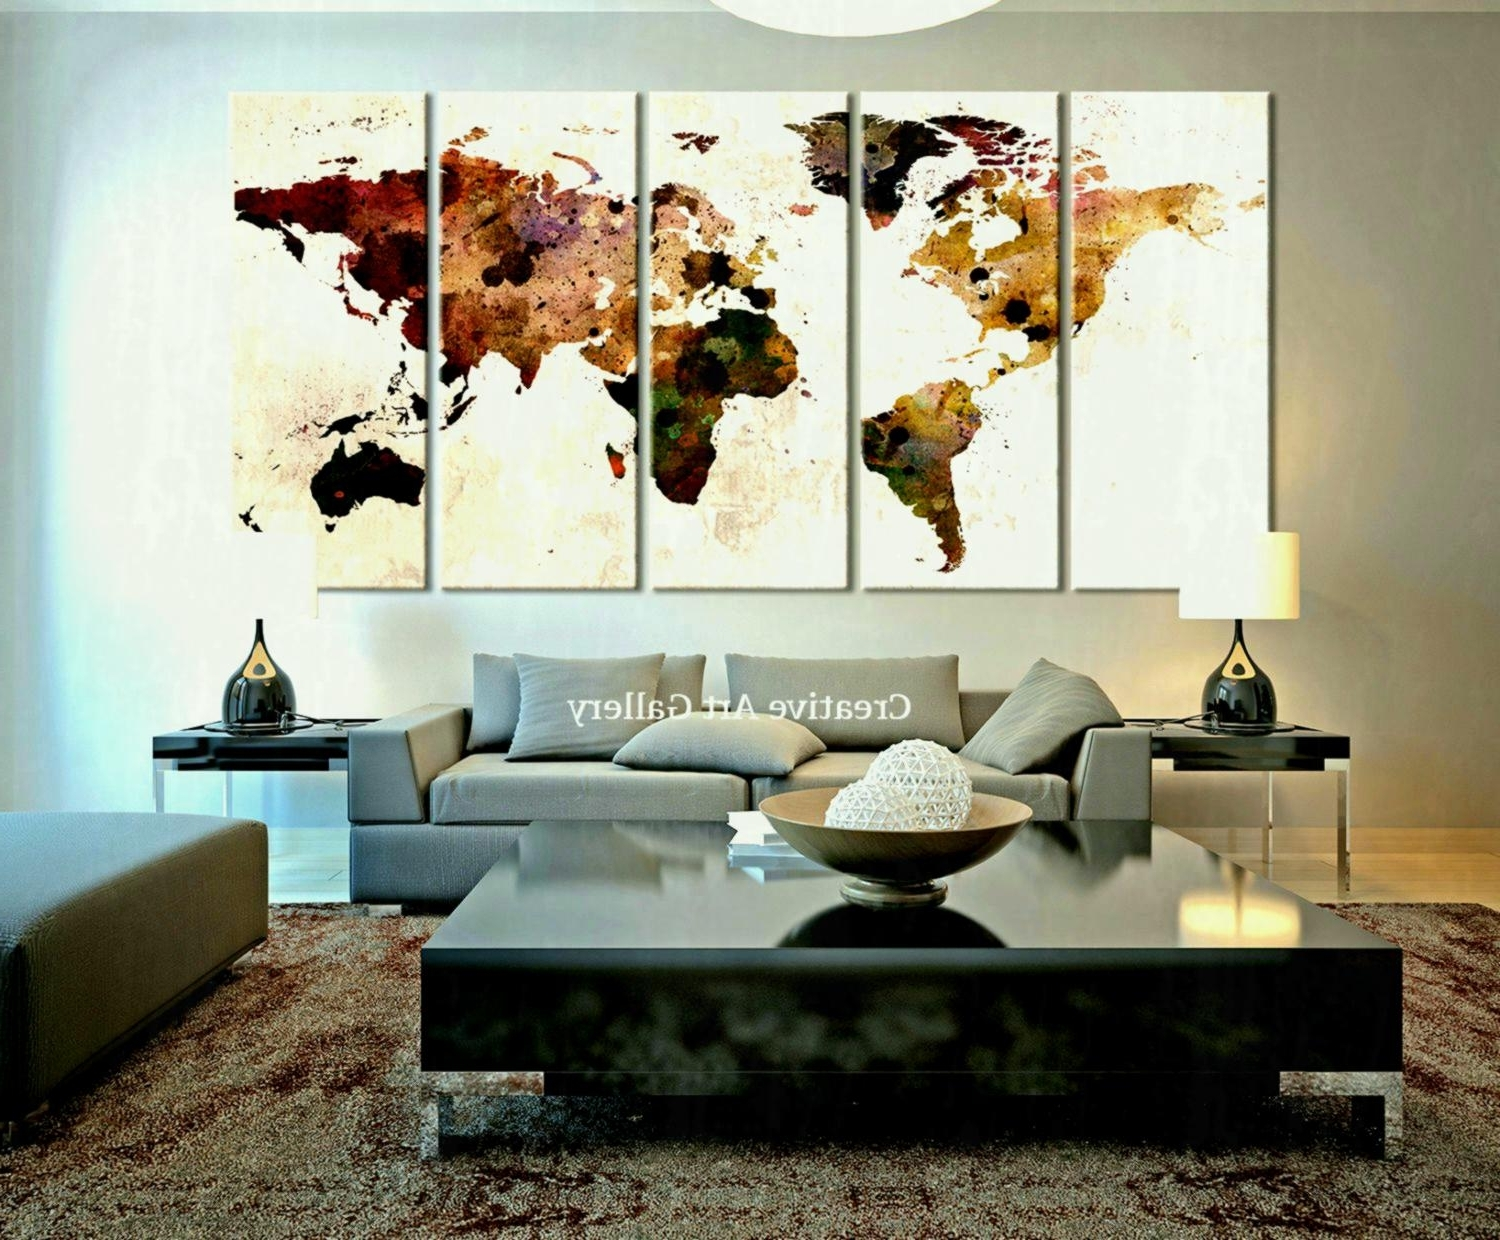 Preferred Oversized Canvas Wall Art Regarding Full Size Of Oversized Canvas Wall Art Sets Home Decor Piece (View 10 of 15)